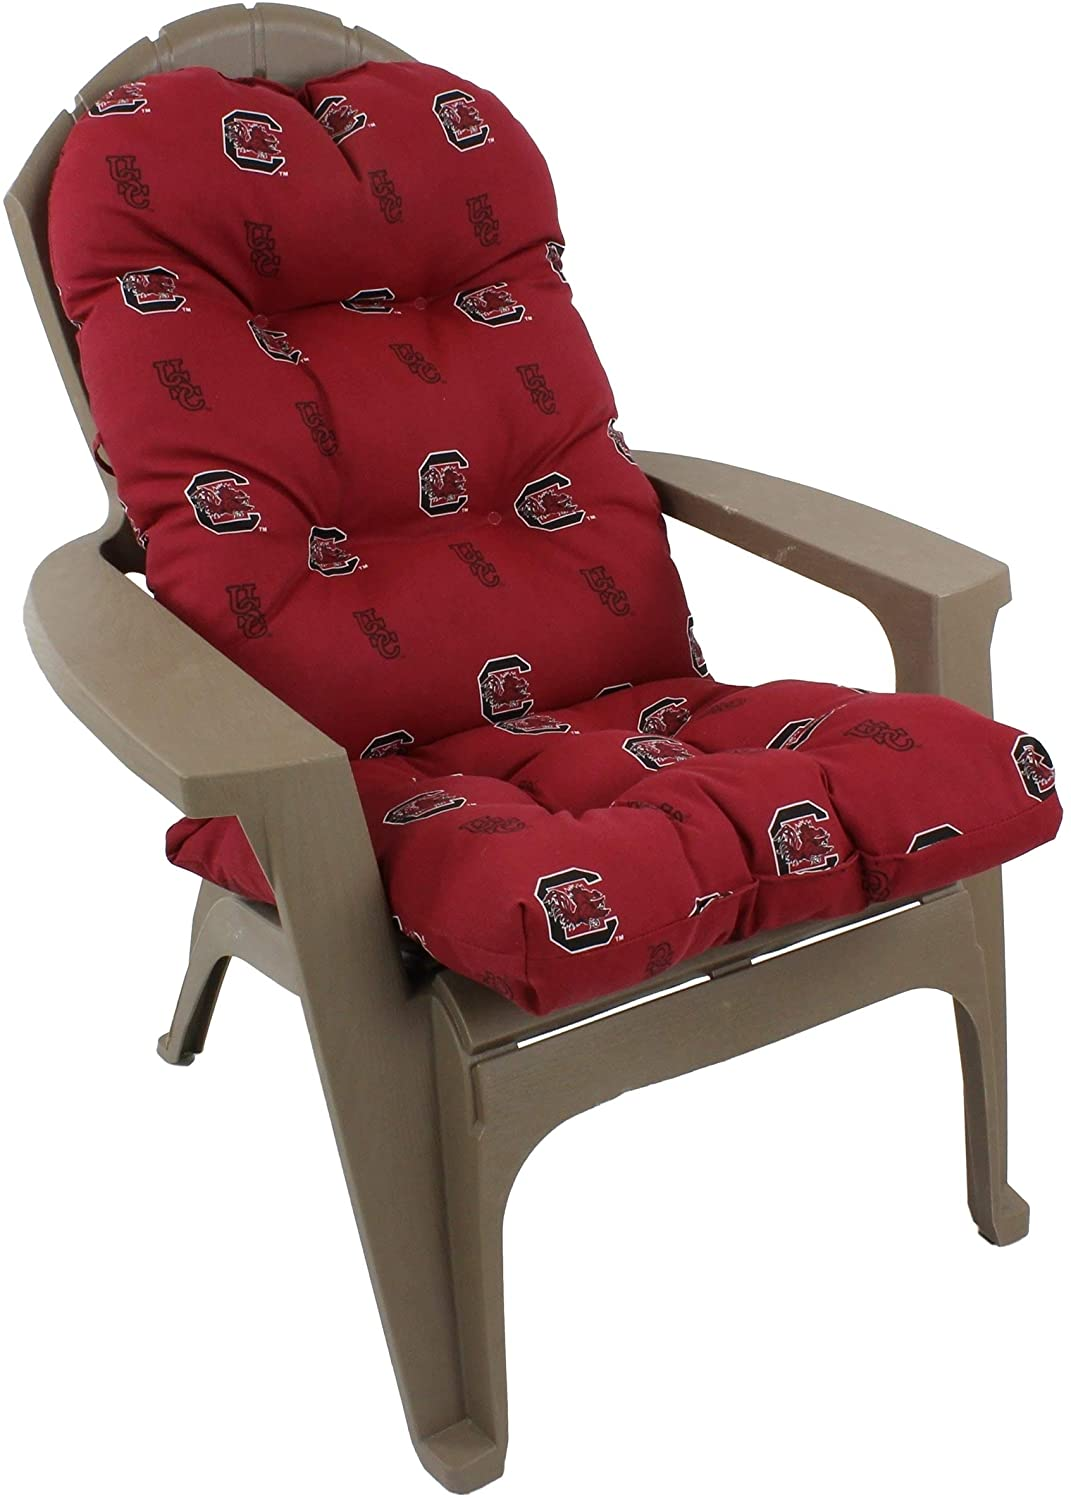 South Carolina Gamecocks Chair Cushion Color Solid Casual Polyester Uv Resistant